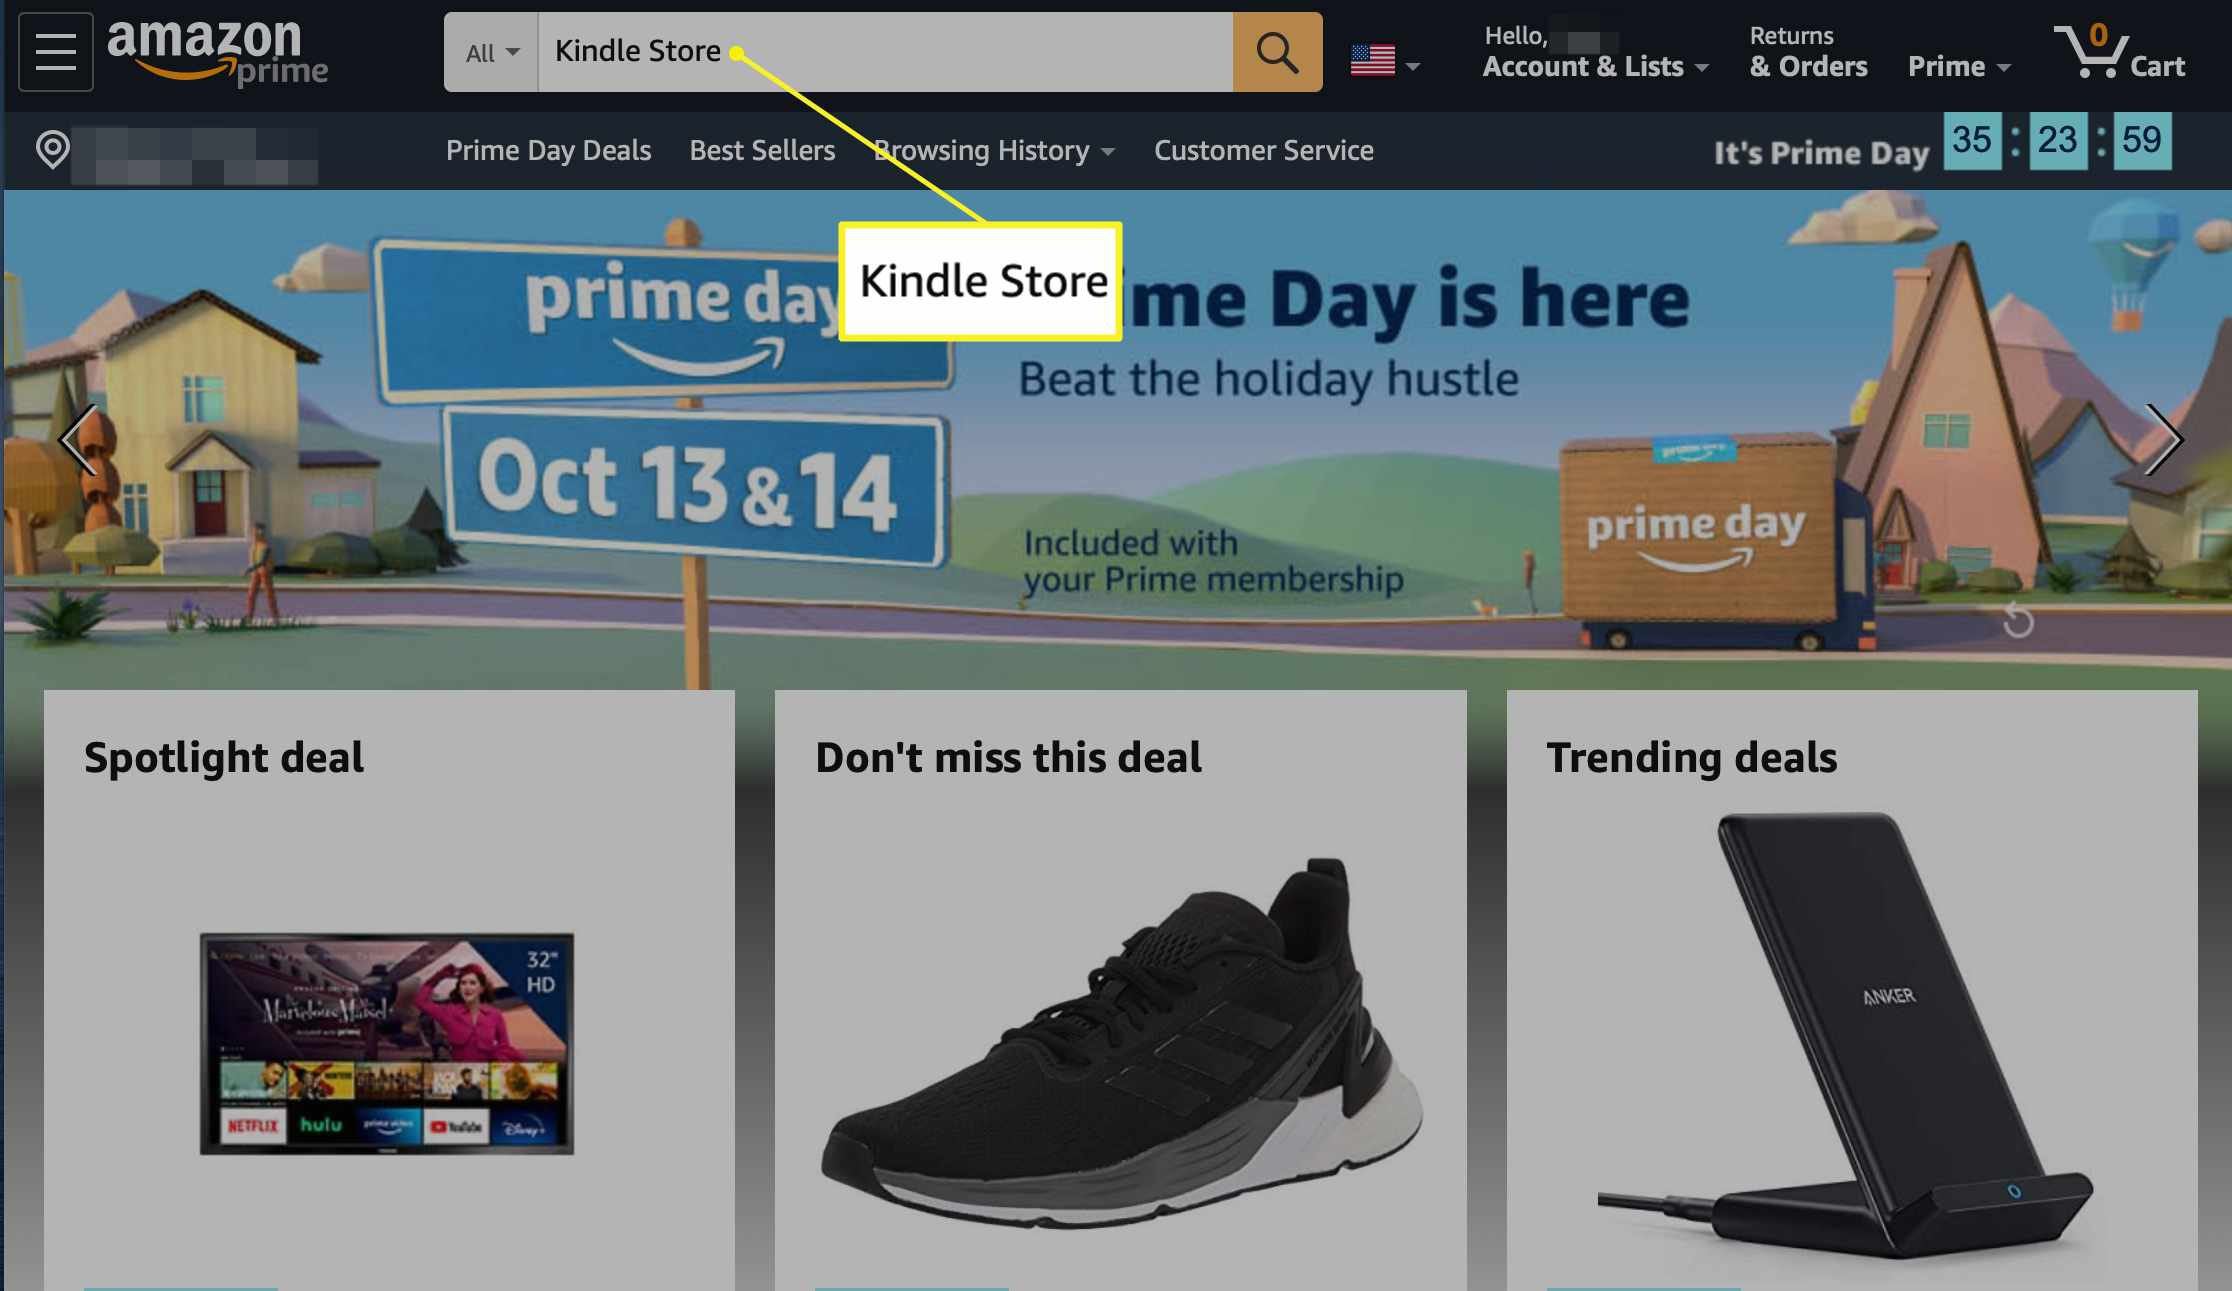 Amazon.com with Kindle Store entered into the search field